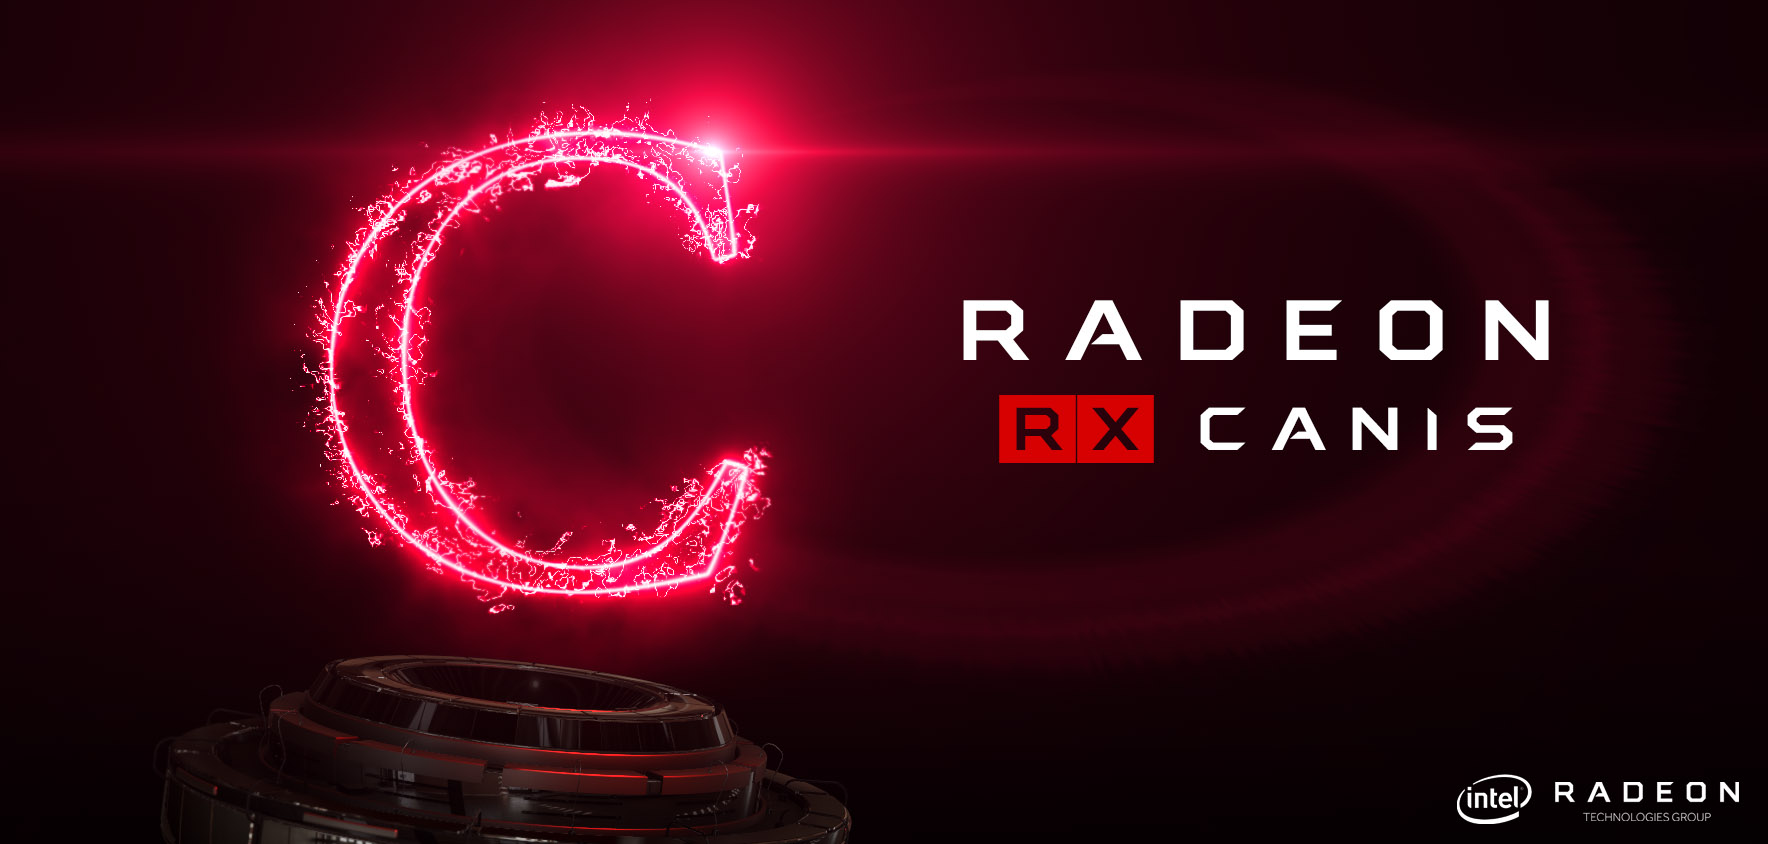 radeon rx canis featured image 1 1